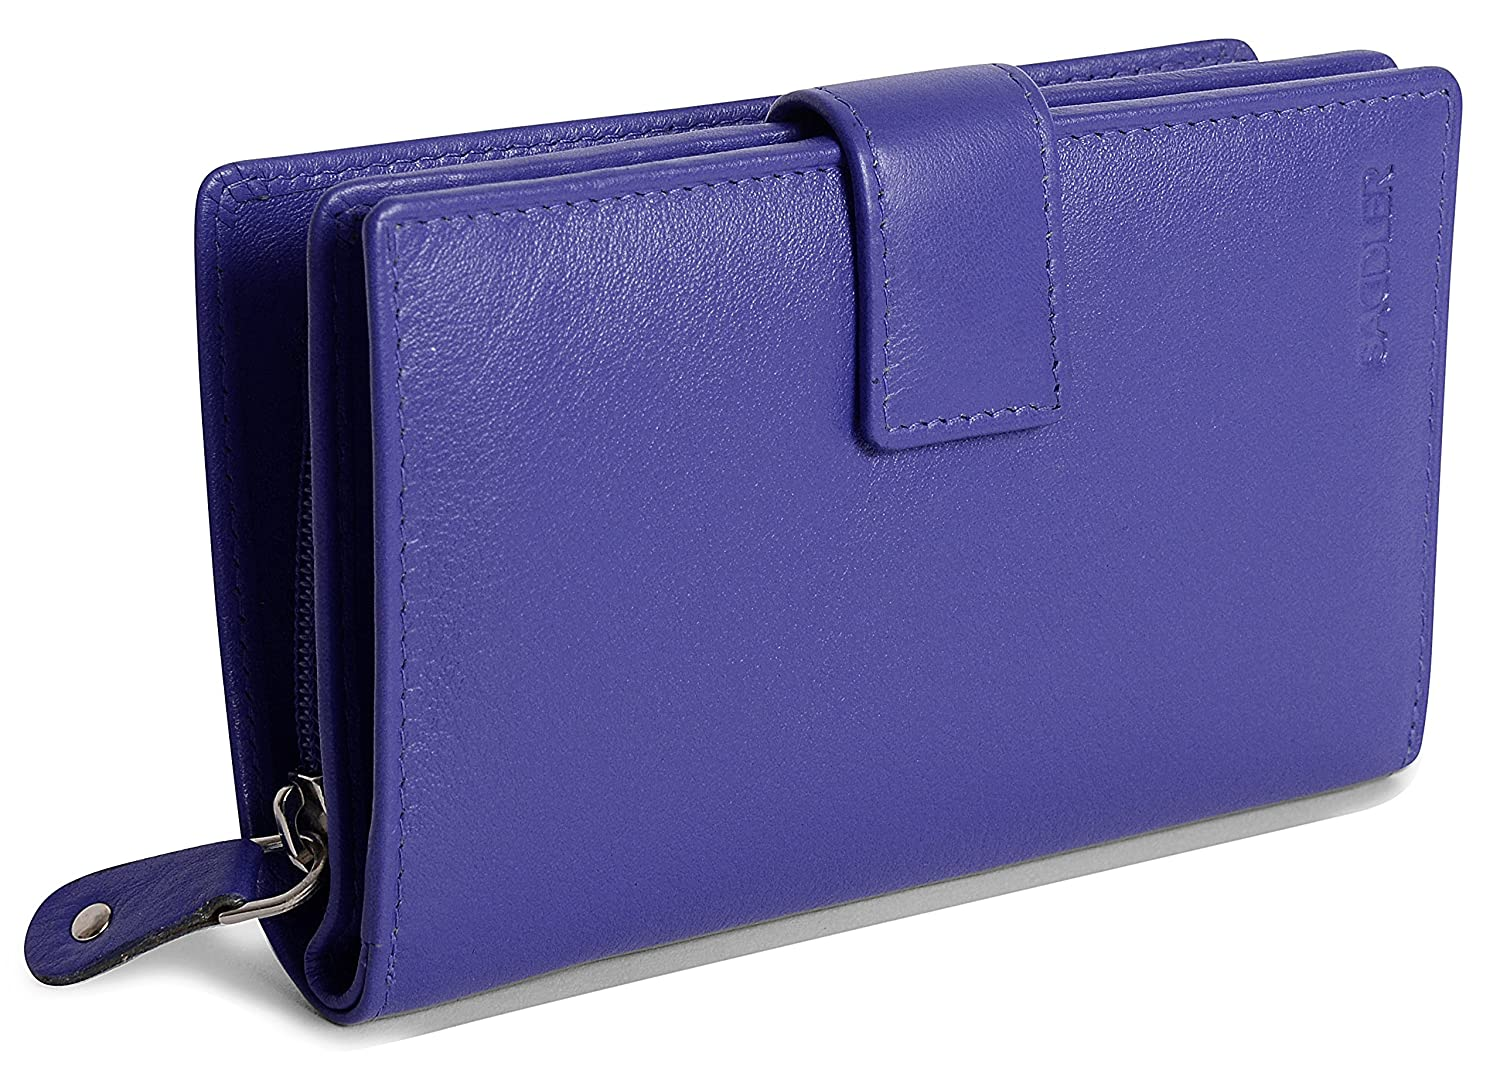 Ultrapurple SADDLER Womens Nappa Leather Medium Tab Wallet with Zipper Coin Purse  Red